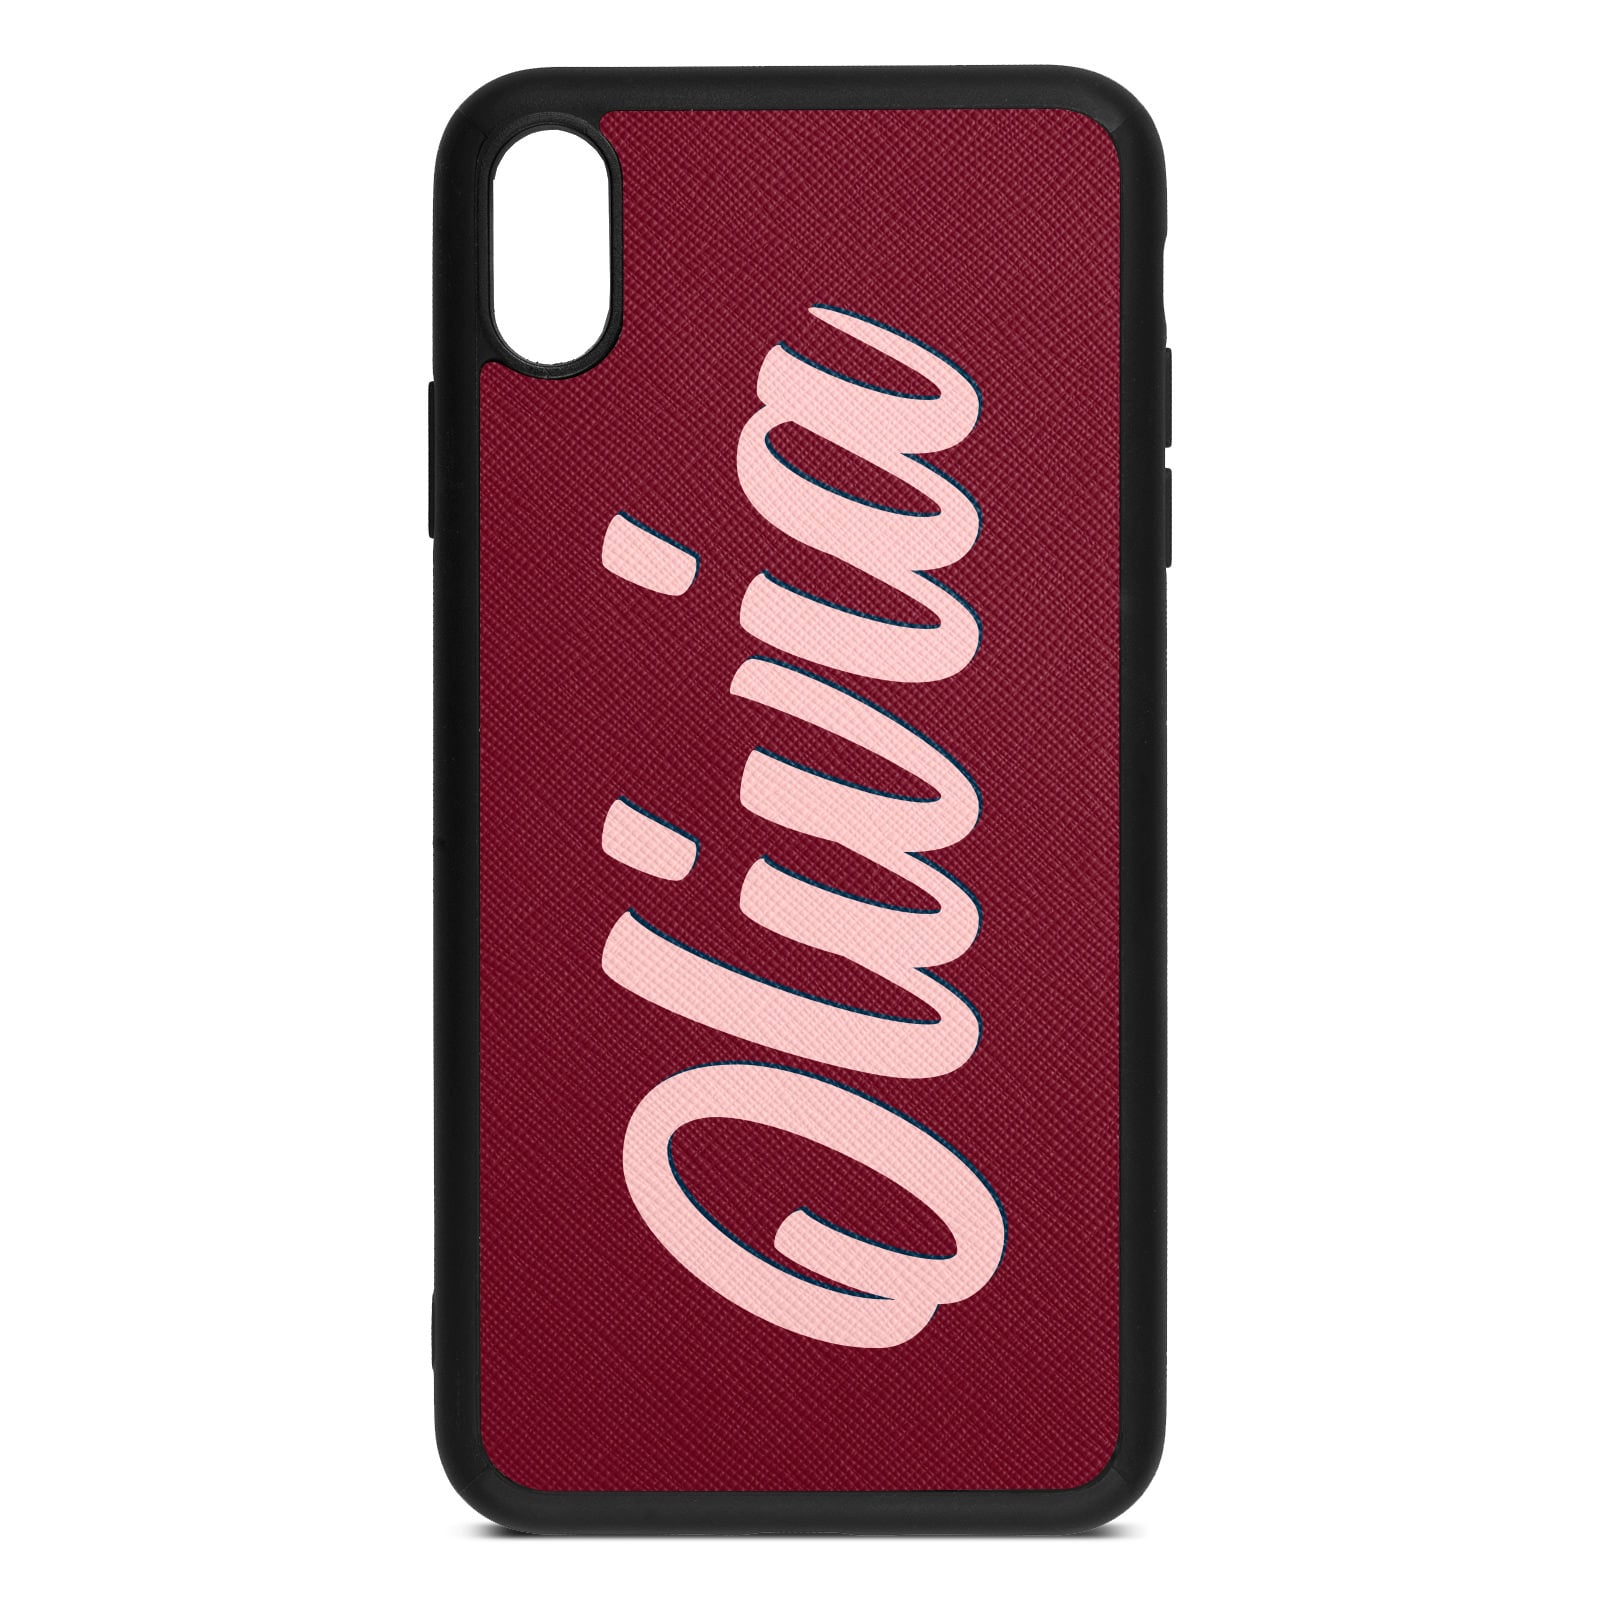 Personalised Dark Red Saffiano Leather iPhone XS Max Case